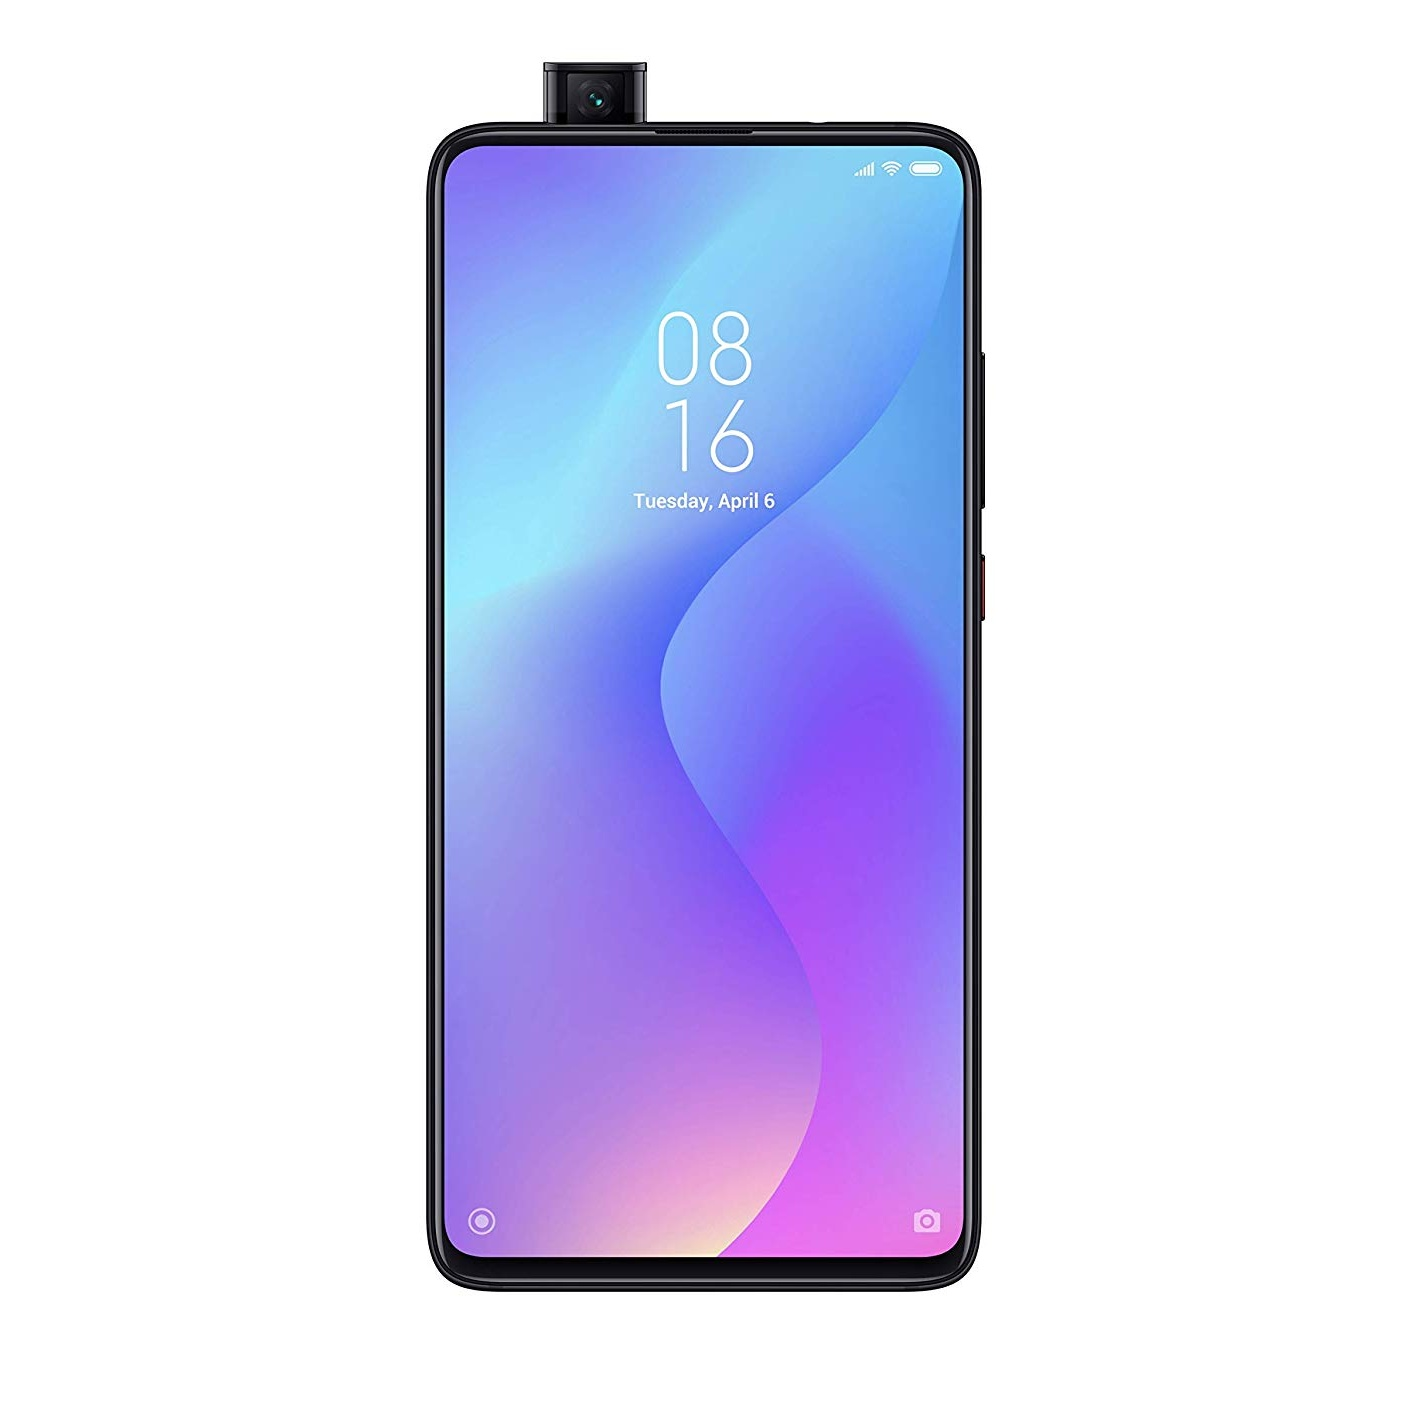 Image of Xiaomi Mi 9T 6GB/128GB Dual Sim (Redmi K20) - Carbon Black